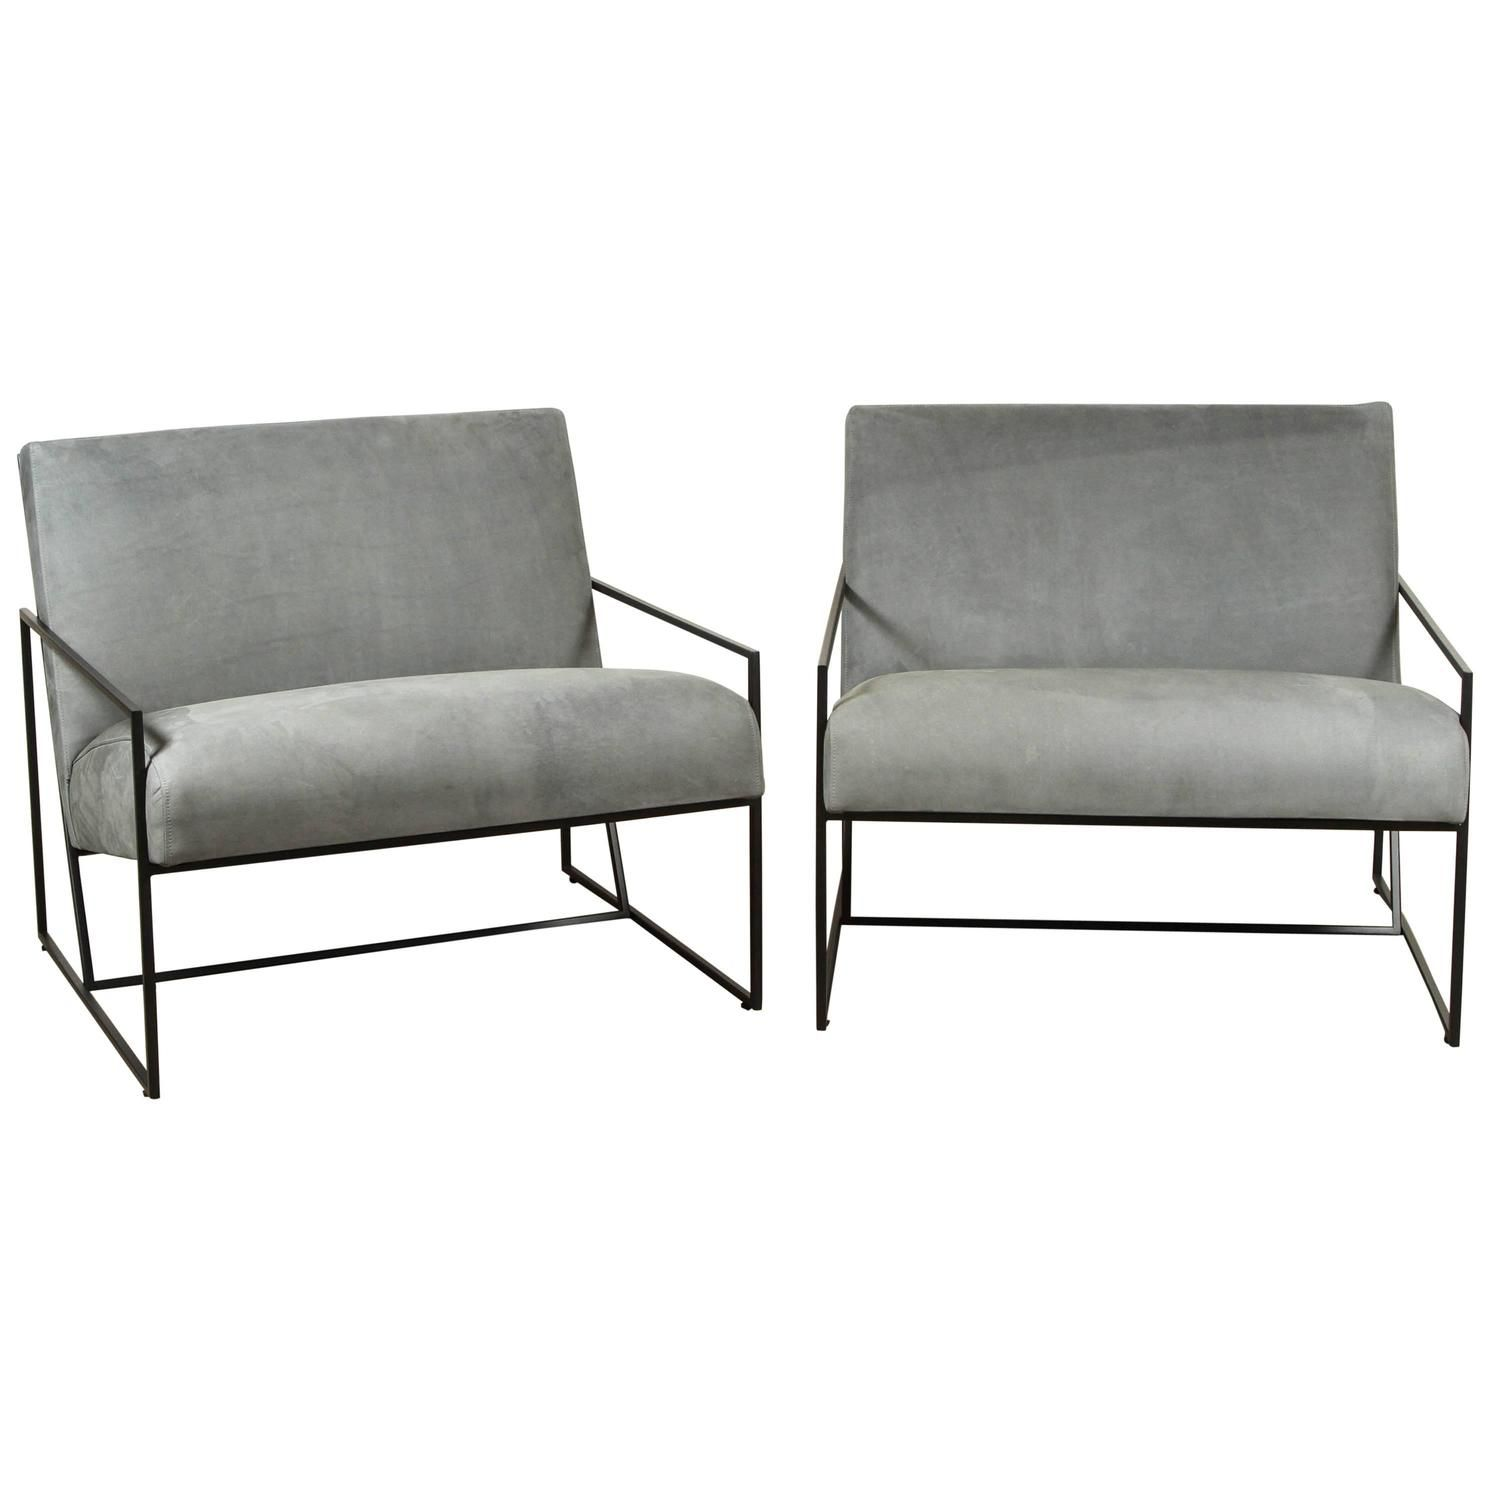 Thin Frame Lounge Chairs by Lawson Fenning